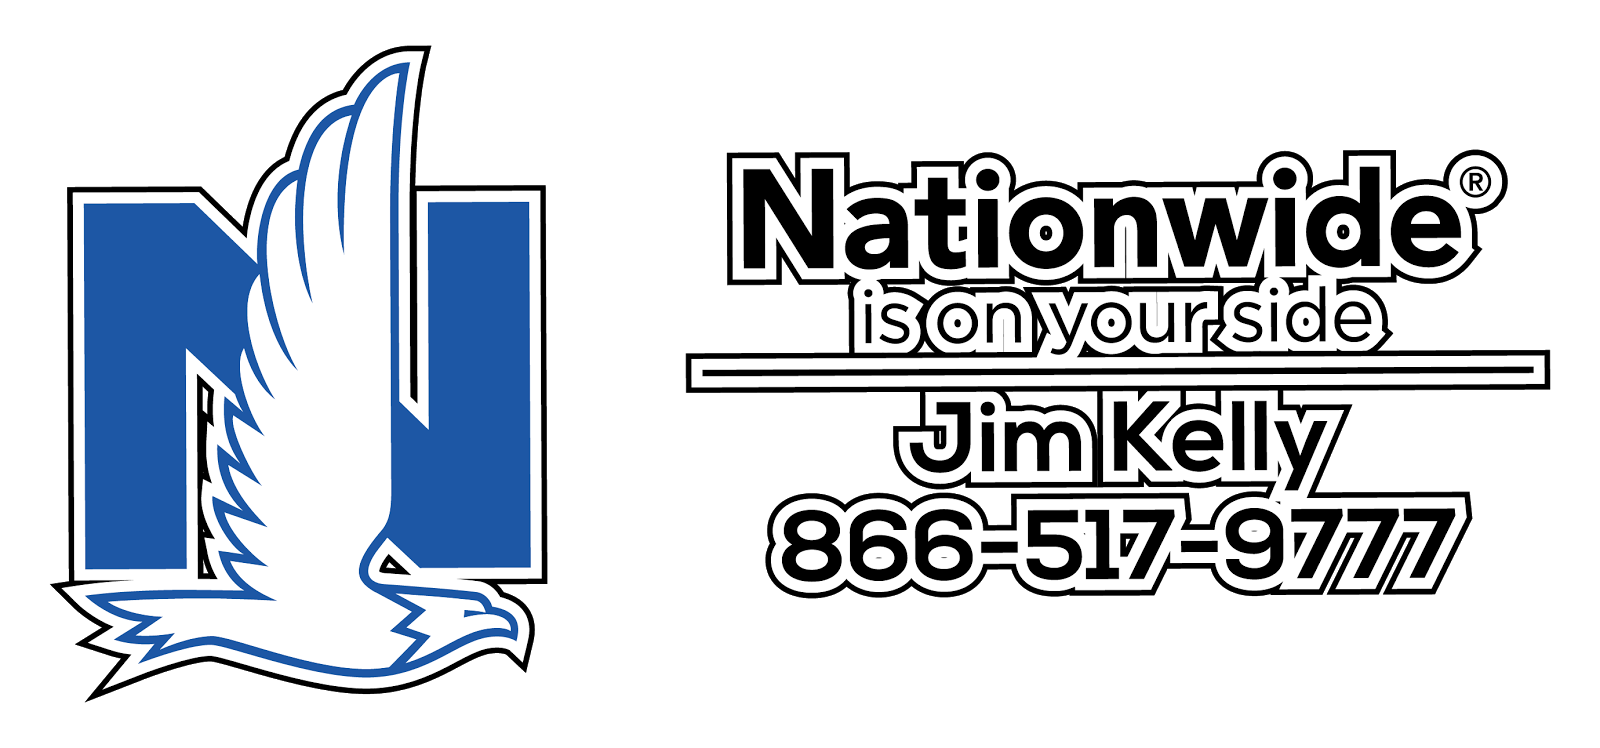 Nationwide Insurance - Jim Kelly